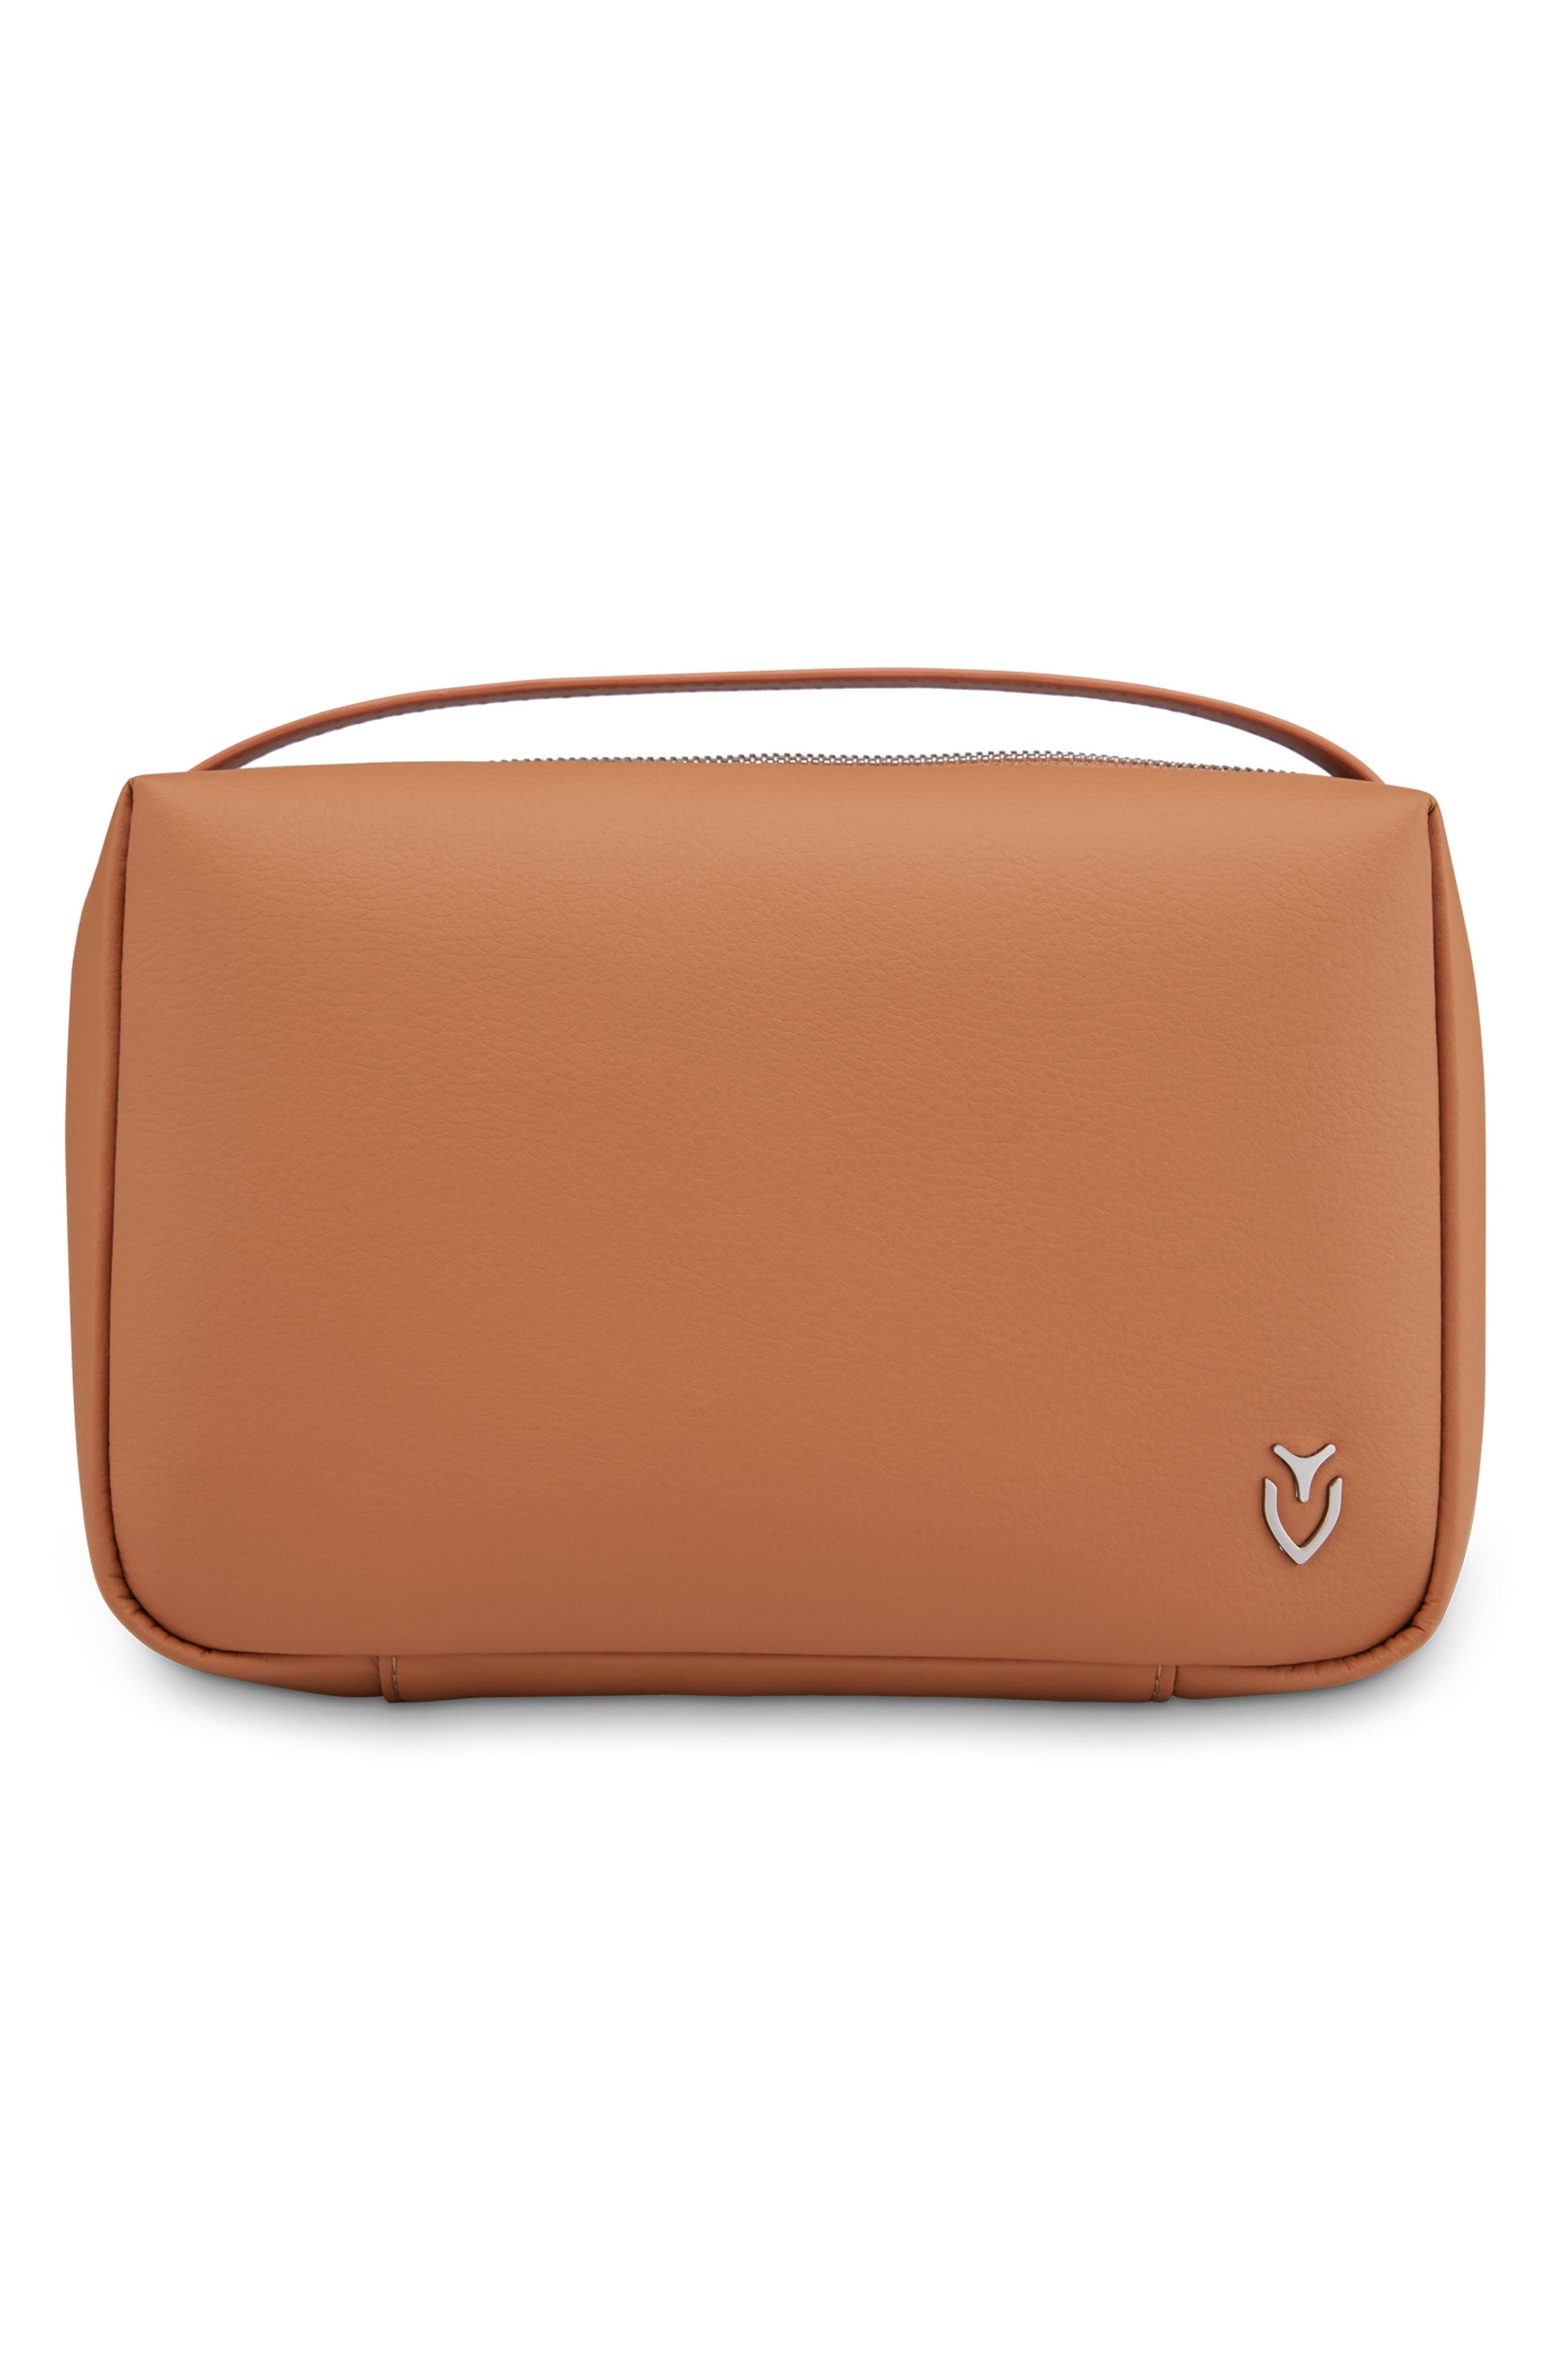 Signature 2.0 Faux Leather Toiletry Case,                         Main,                         color, Pebbled Tan